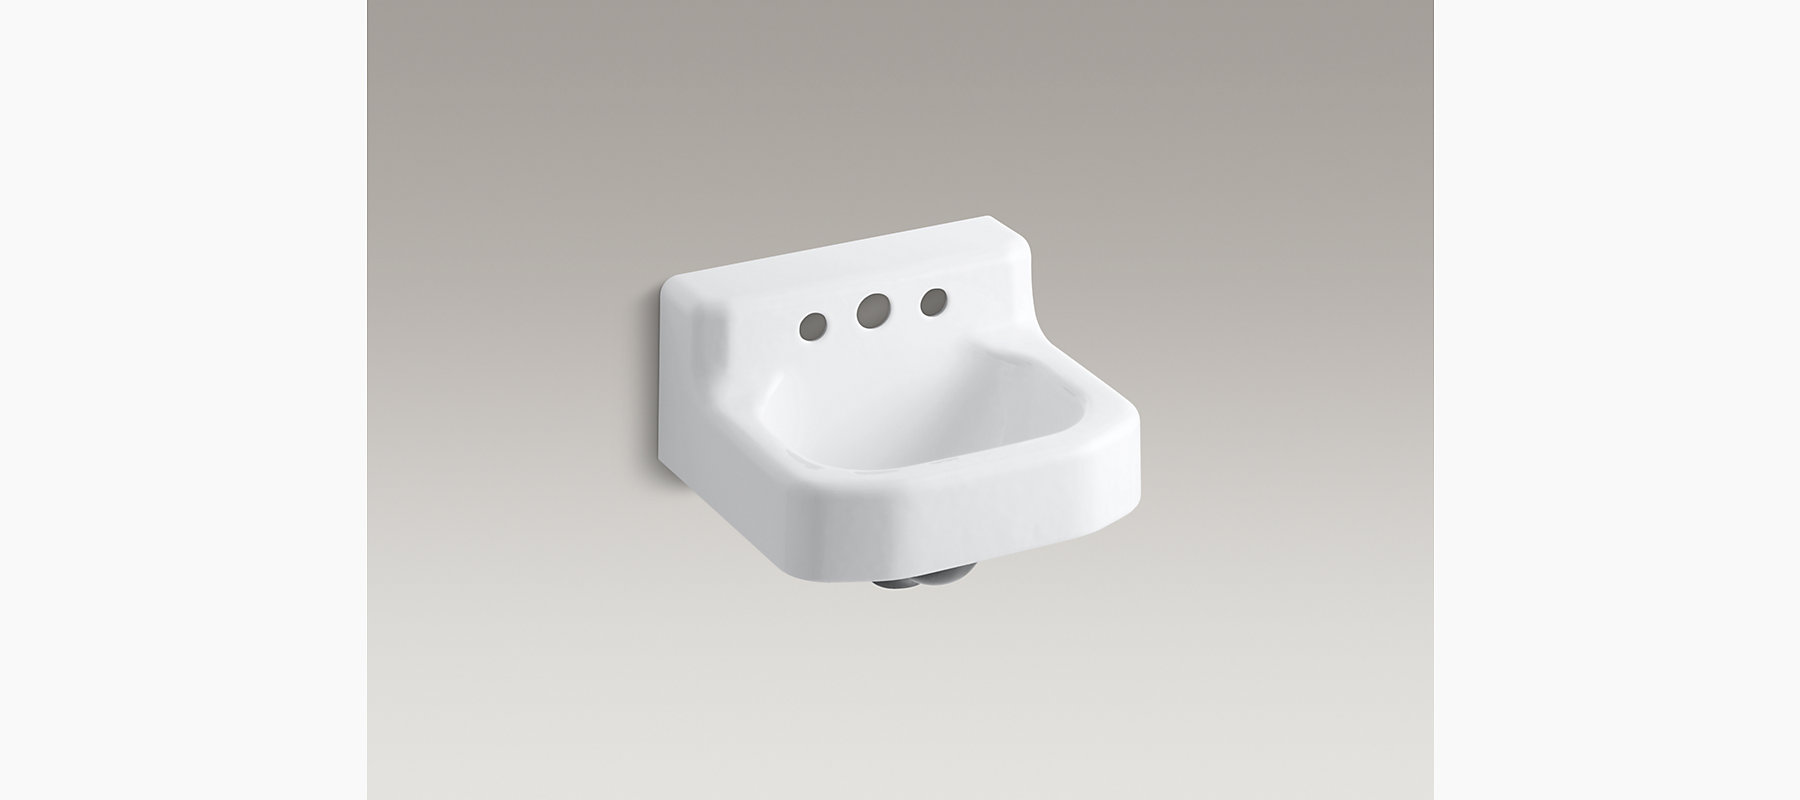 commercial bathroom sinks commercial bathroom vanities commercial bathroom  vanities suppliers and manufacturers at commercial bathroom sinks .